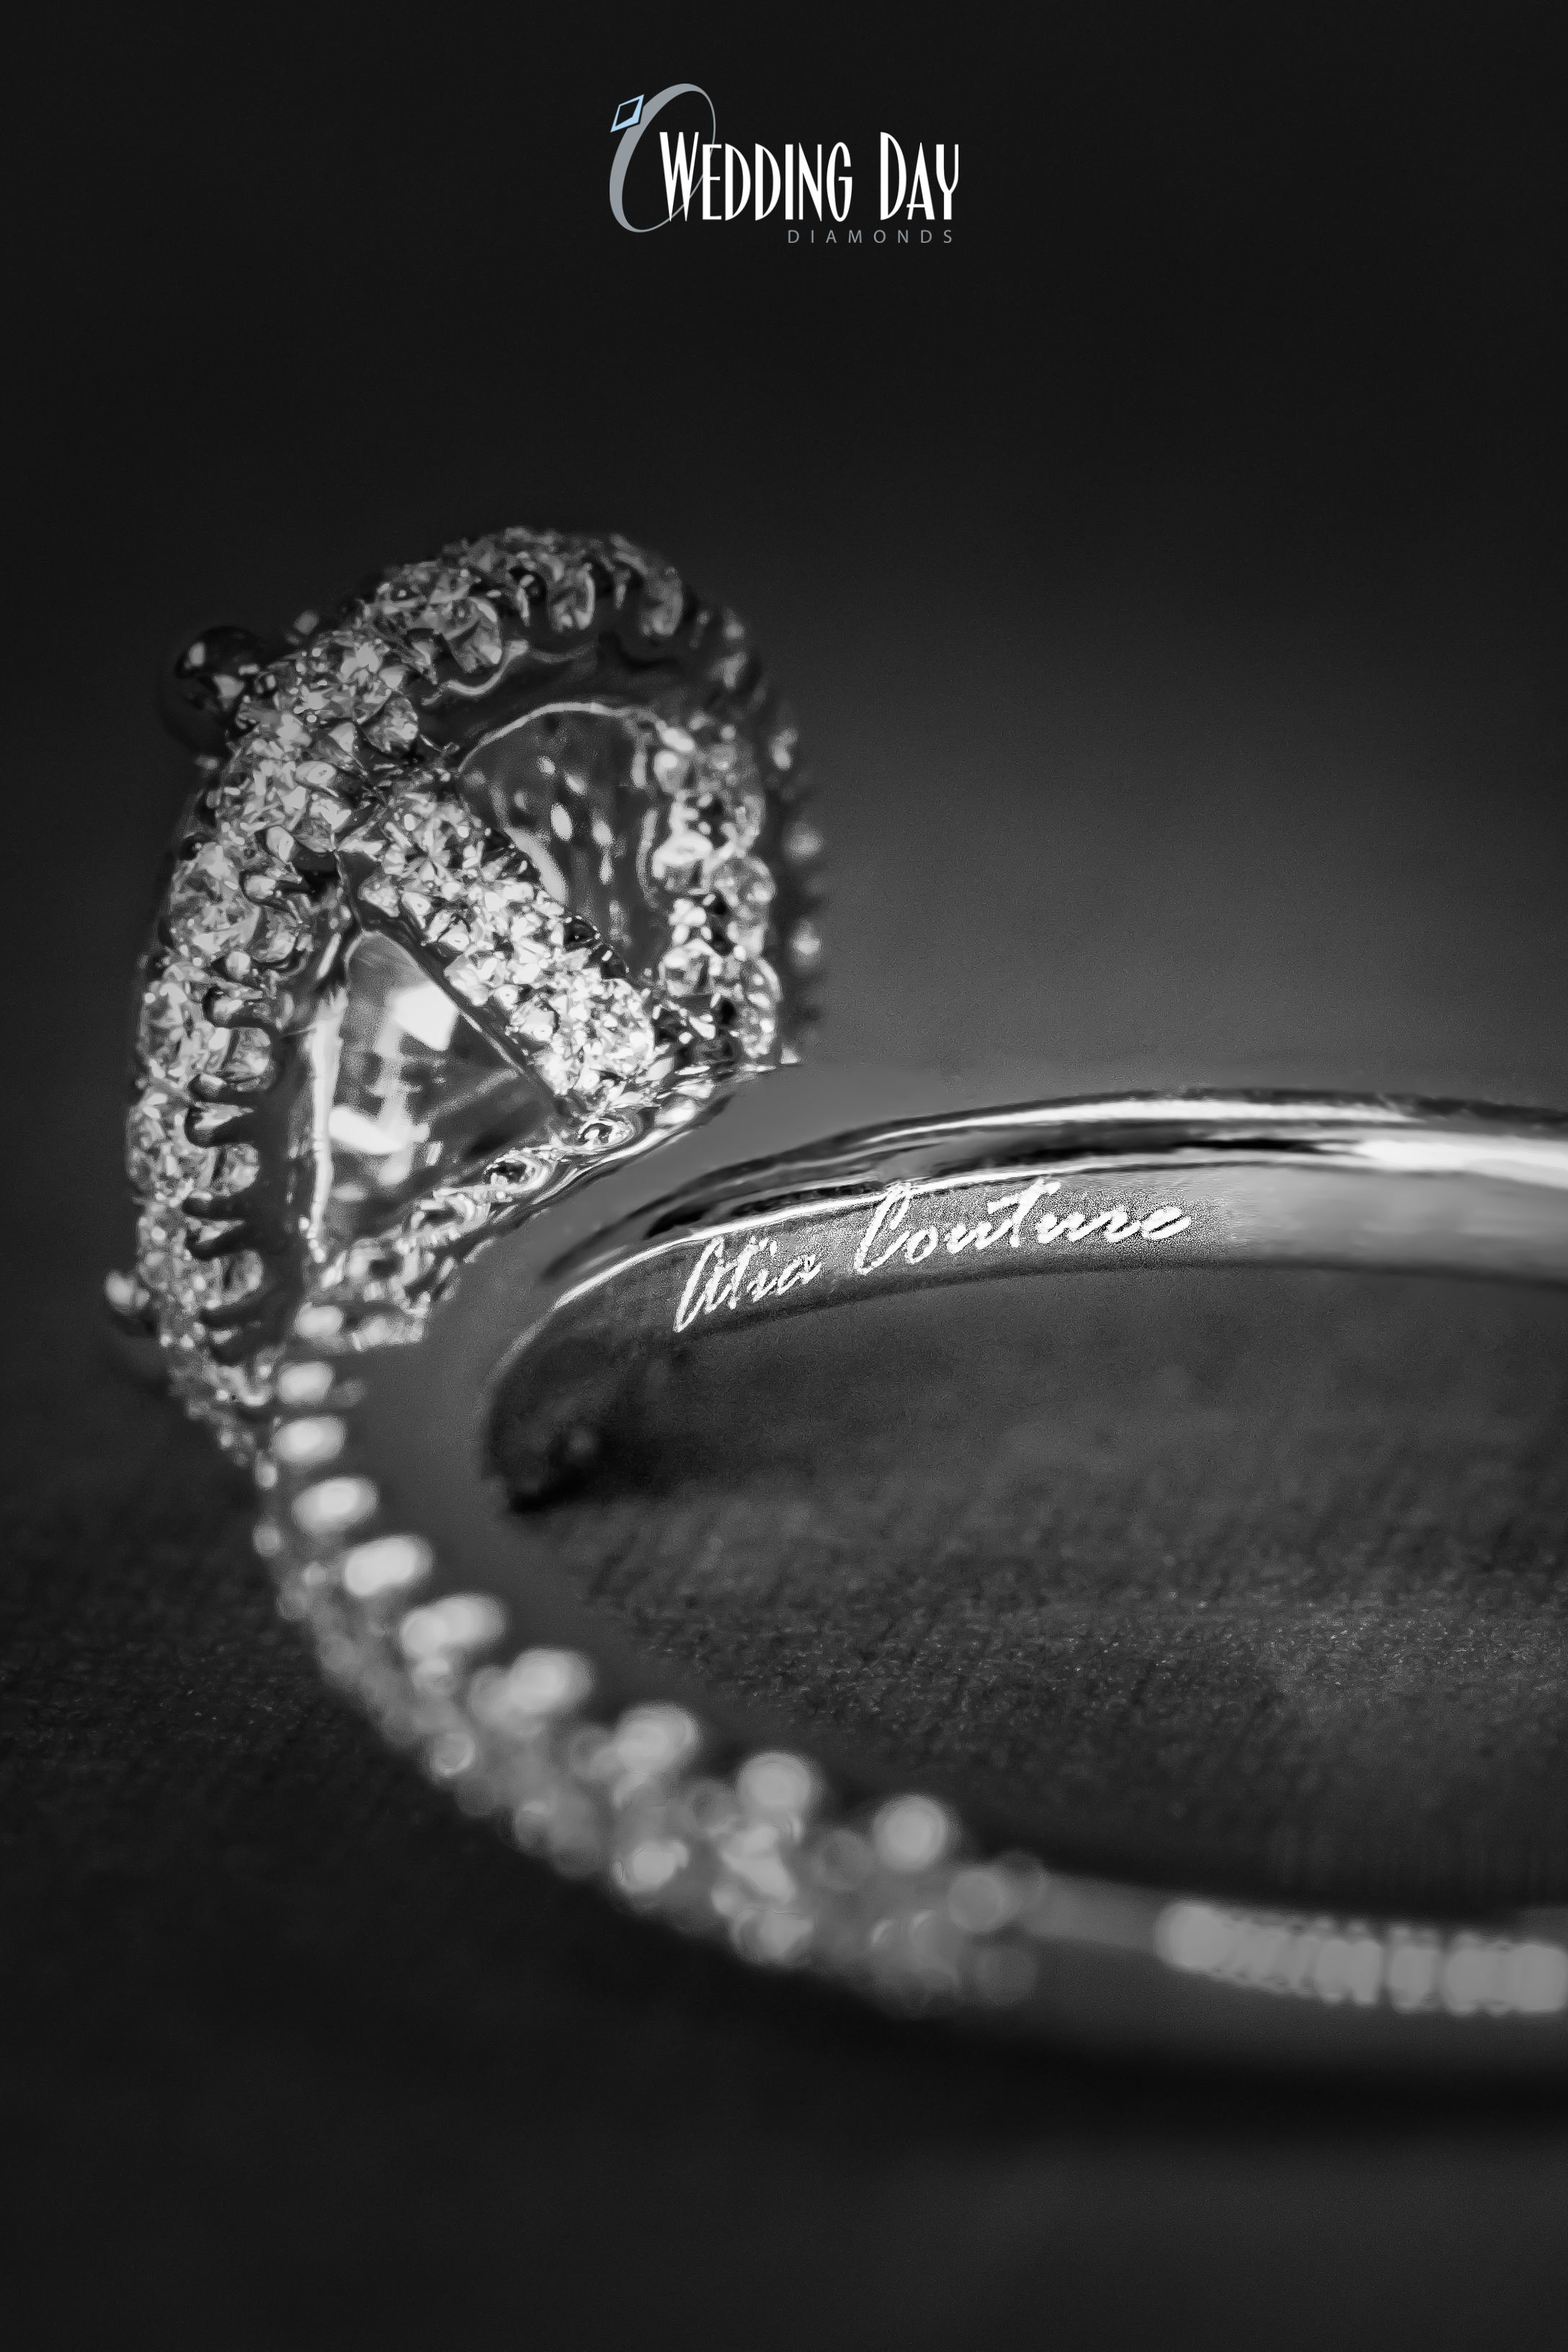 Exclusive Atia Couture Engagement Ring Collection Engagement Rings Wedding Day Diamonds Engagement